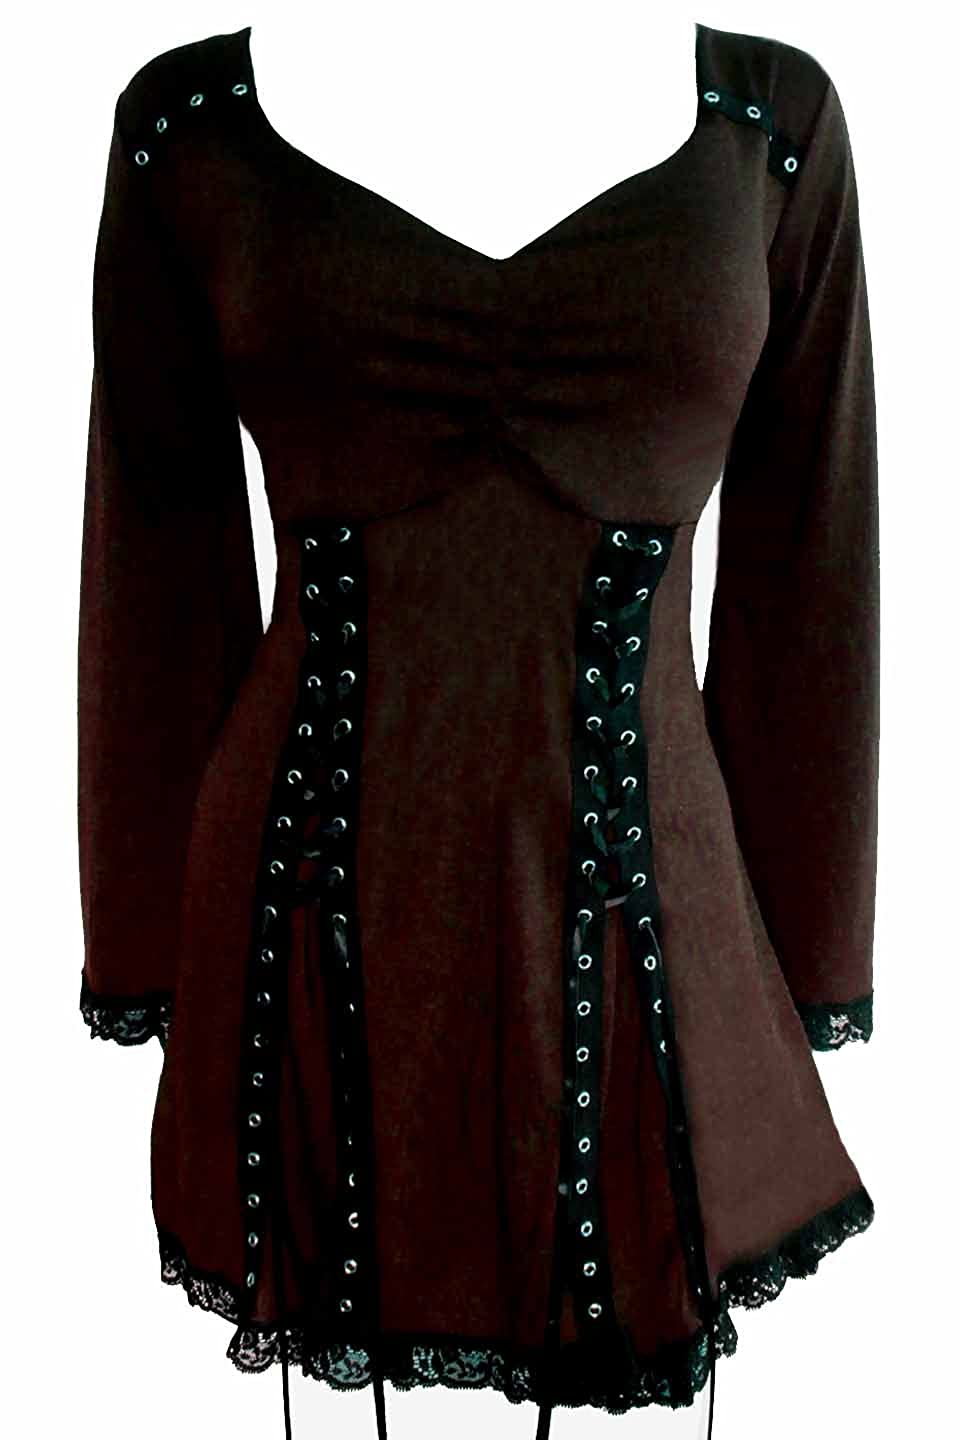 Steampunk Plus Size Clothing & Costumes Dare to Wear Electra Corset Top: Gothic Punk Rock Steampunk Womens Tunic Shirt for Everyday Halloween Cosplay Concerts $59.99 AT vintagedancer.com